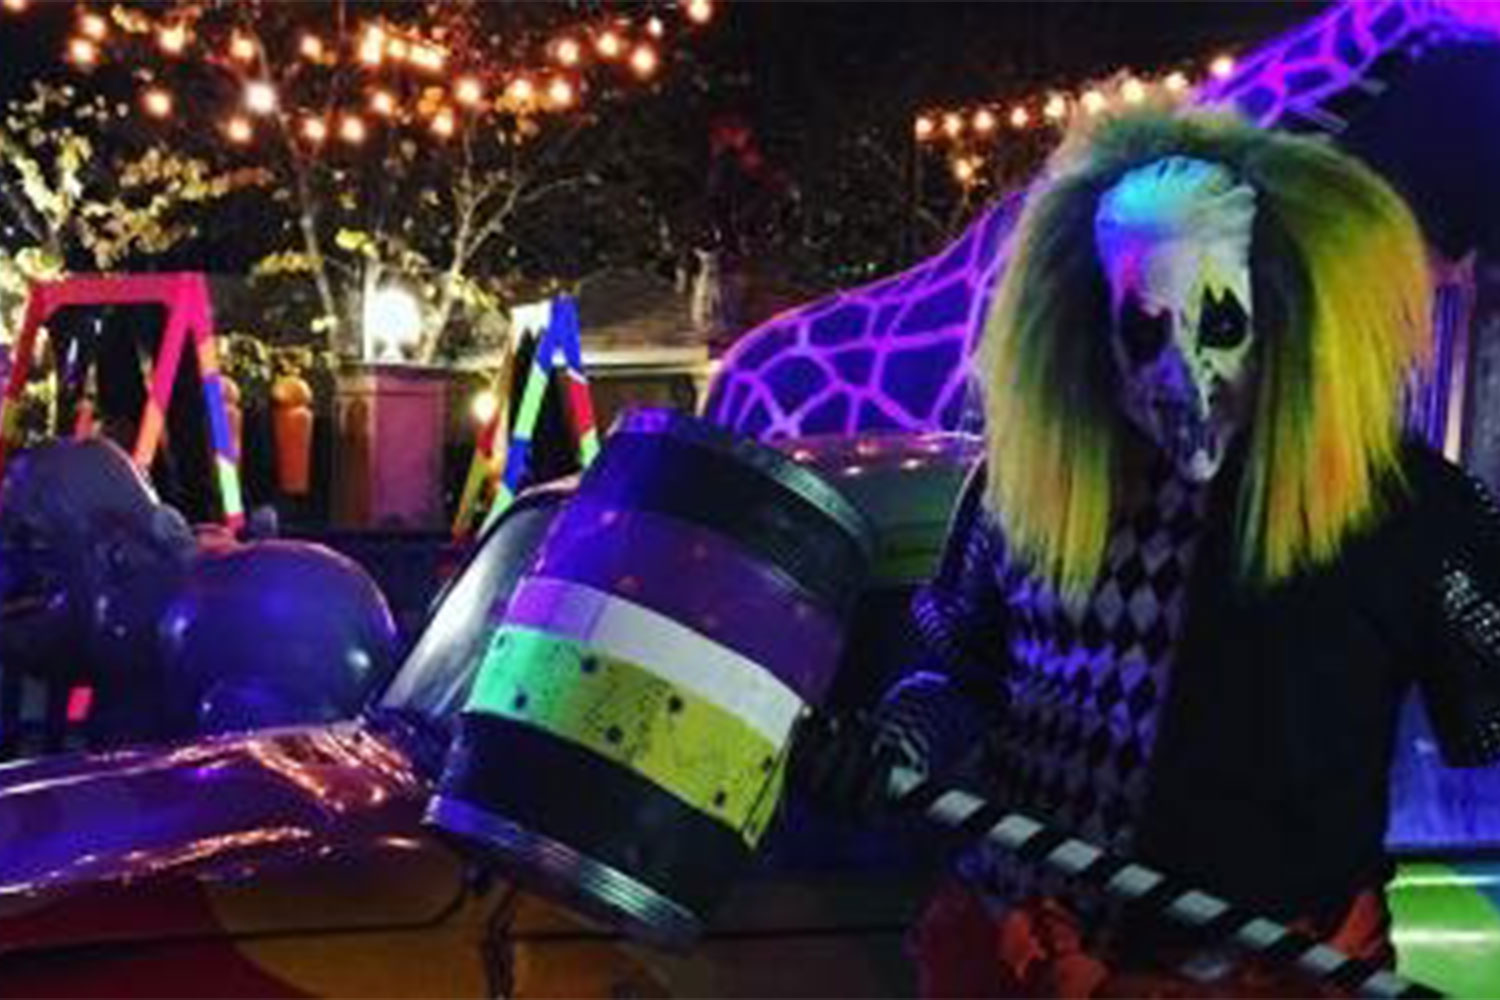 A main character of Fright Fest poses, ready to terrify audiences. Their performance is in part what makes Fright Fest such a thrill.